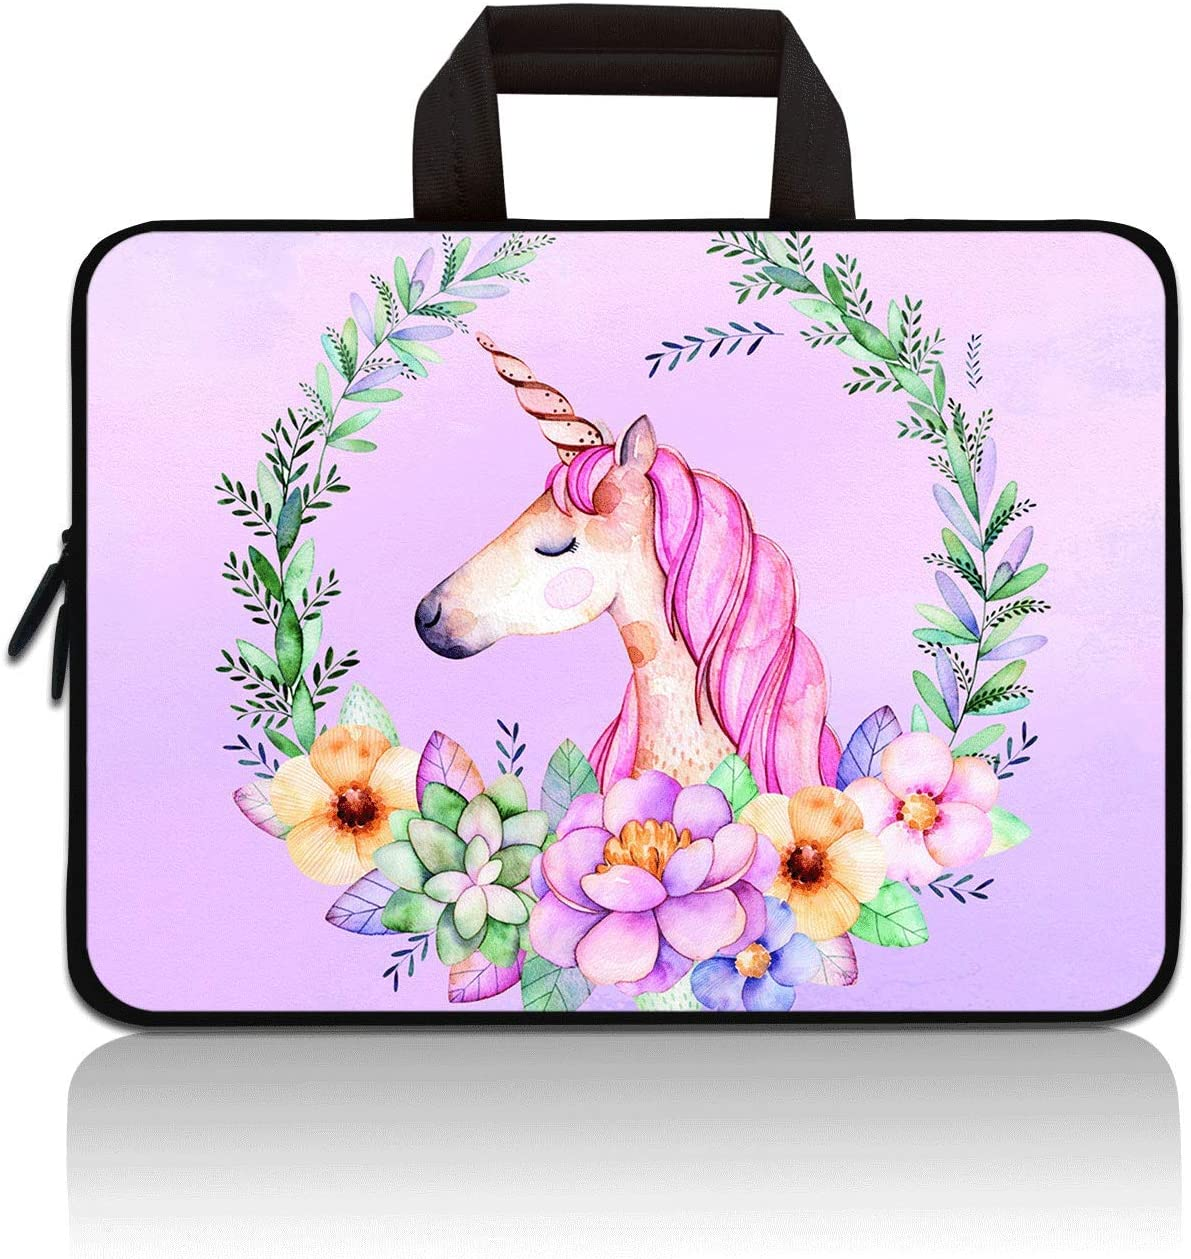 RUYIDAY 11 11.6 12 12.1 12.5 inch Laptop Carrying Bag Chromebook Case Notebook Ultrabook Bag Tablet Cover Neoprene Sleeve Fit Apple Macbook Air Samsung Acer HP DELL Lenovo Asus